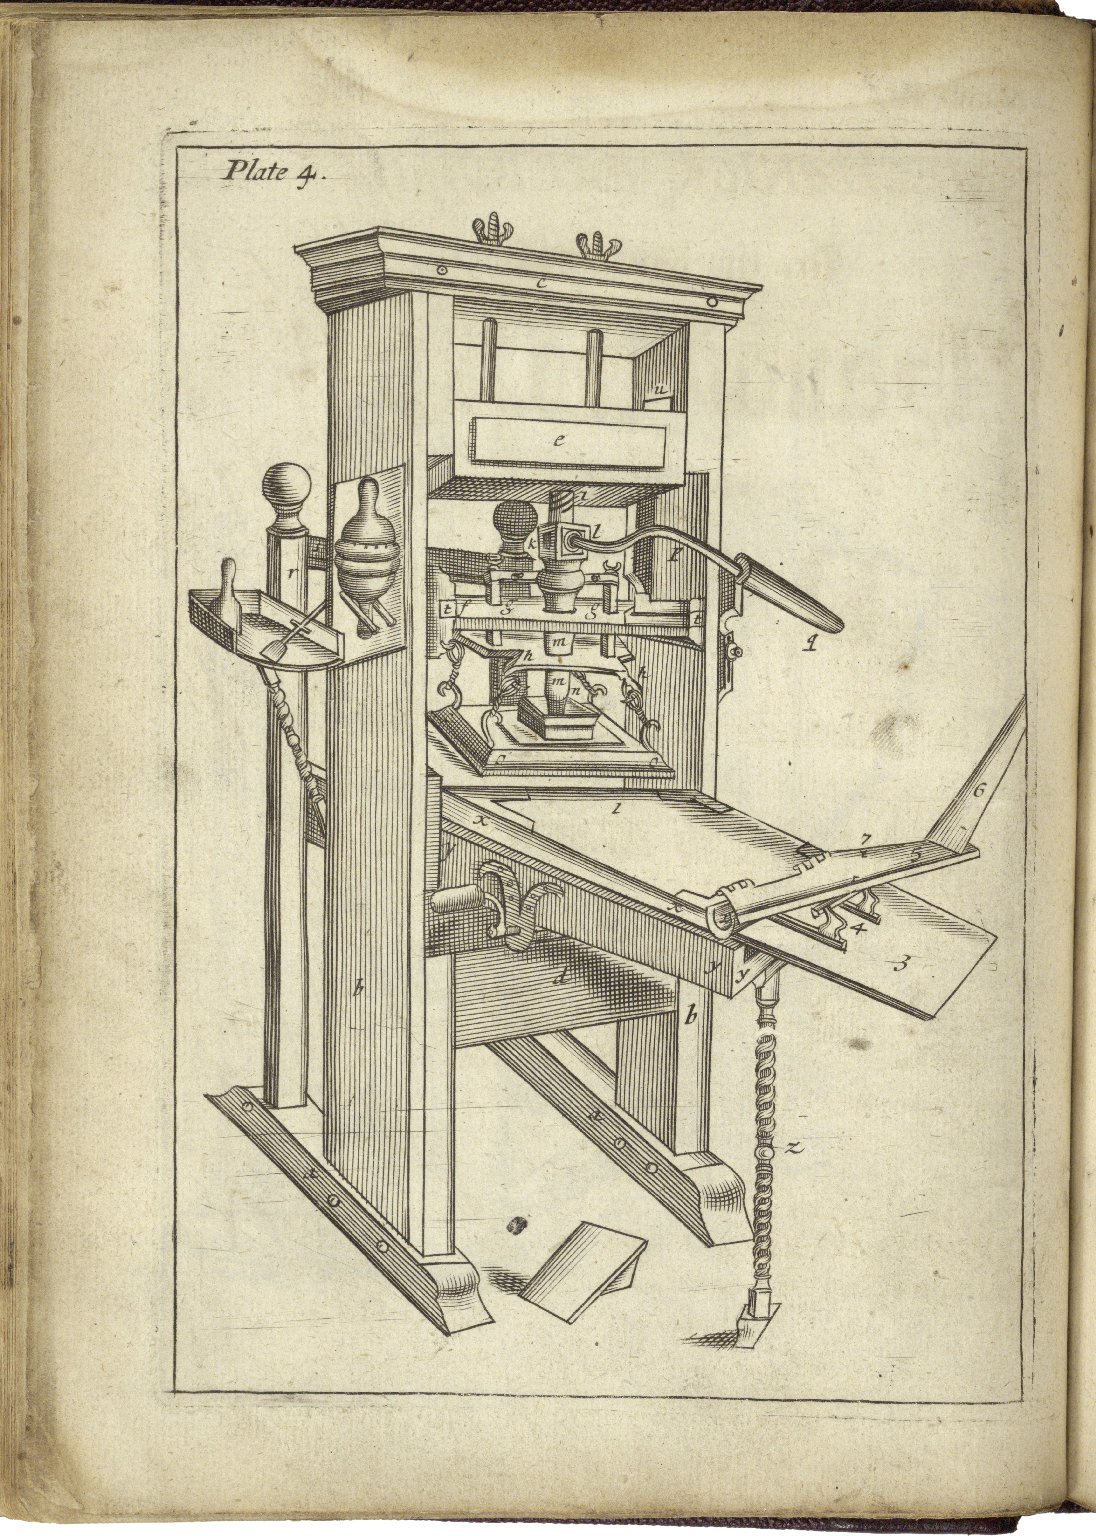 Image of a printing press.